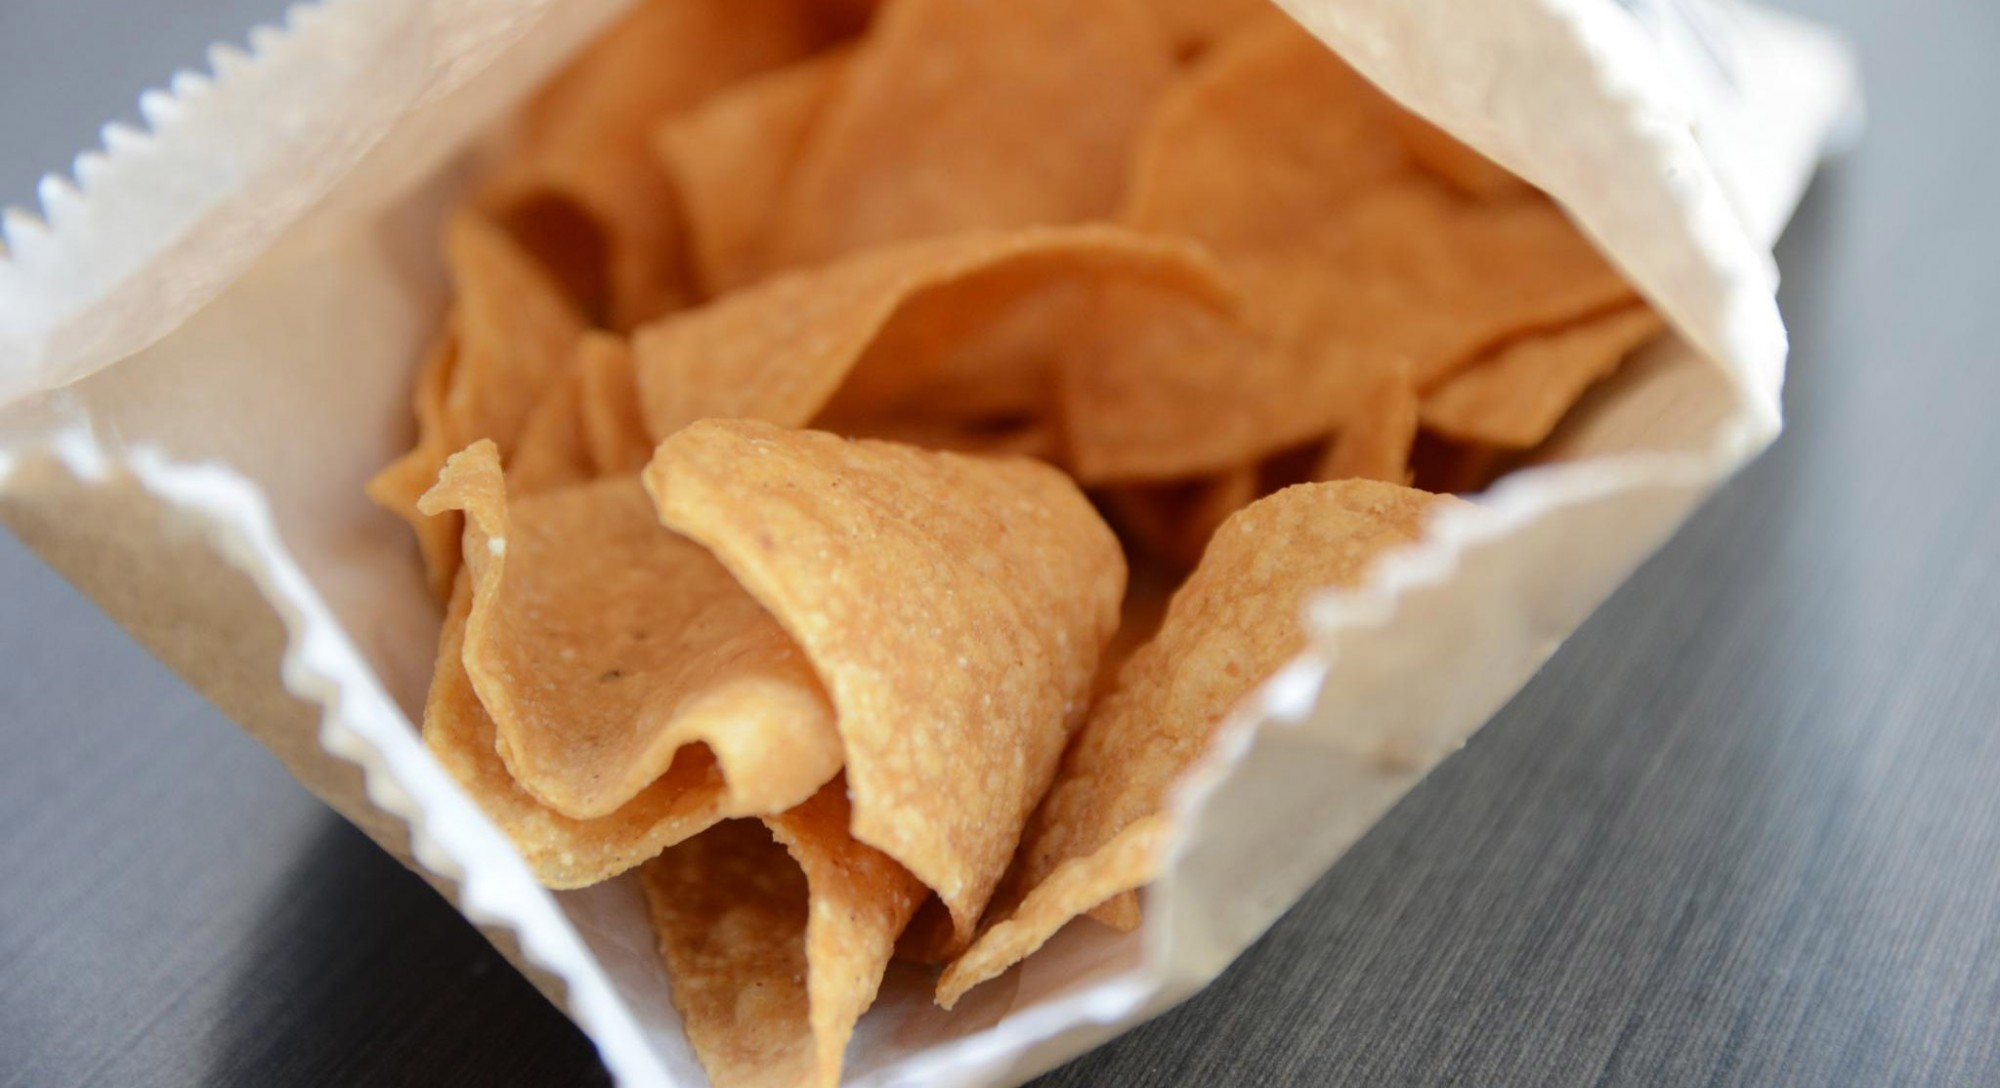 Ask a Nutritionist: 3 New Ways to Use Corn Chips